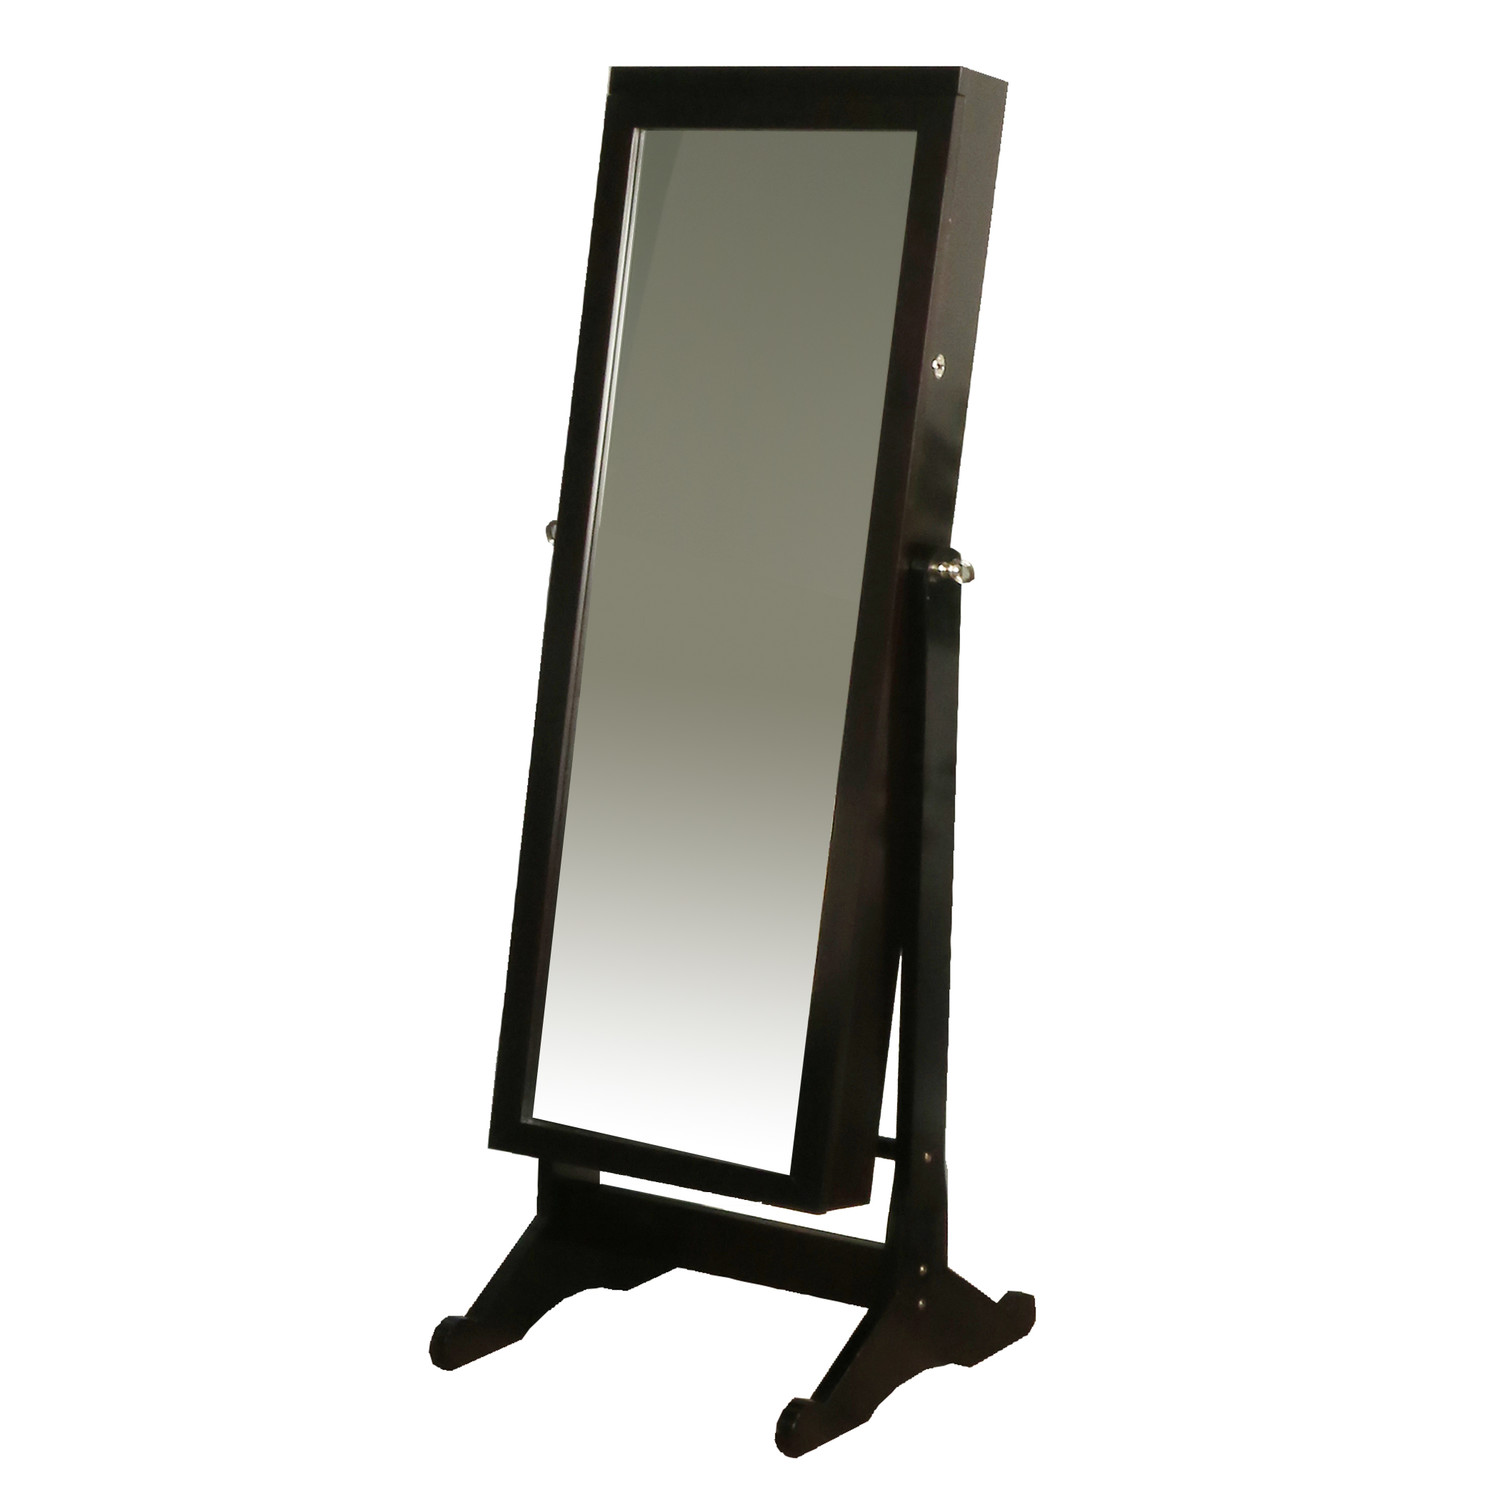 Richards Homewares Jewelry Espresso Standing Armoire with Led Light by Overstock